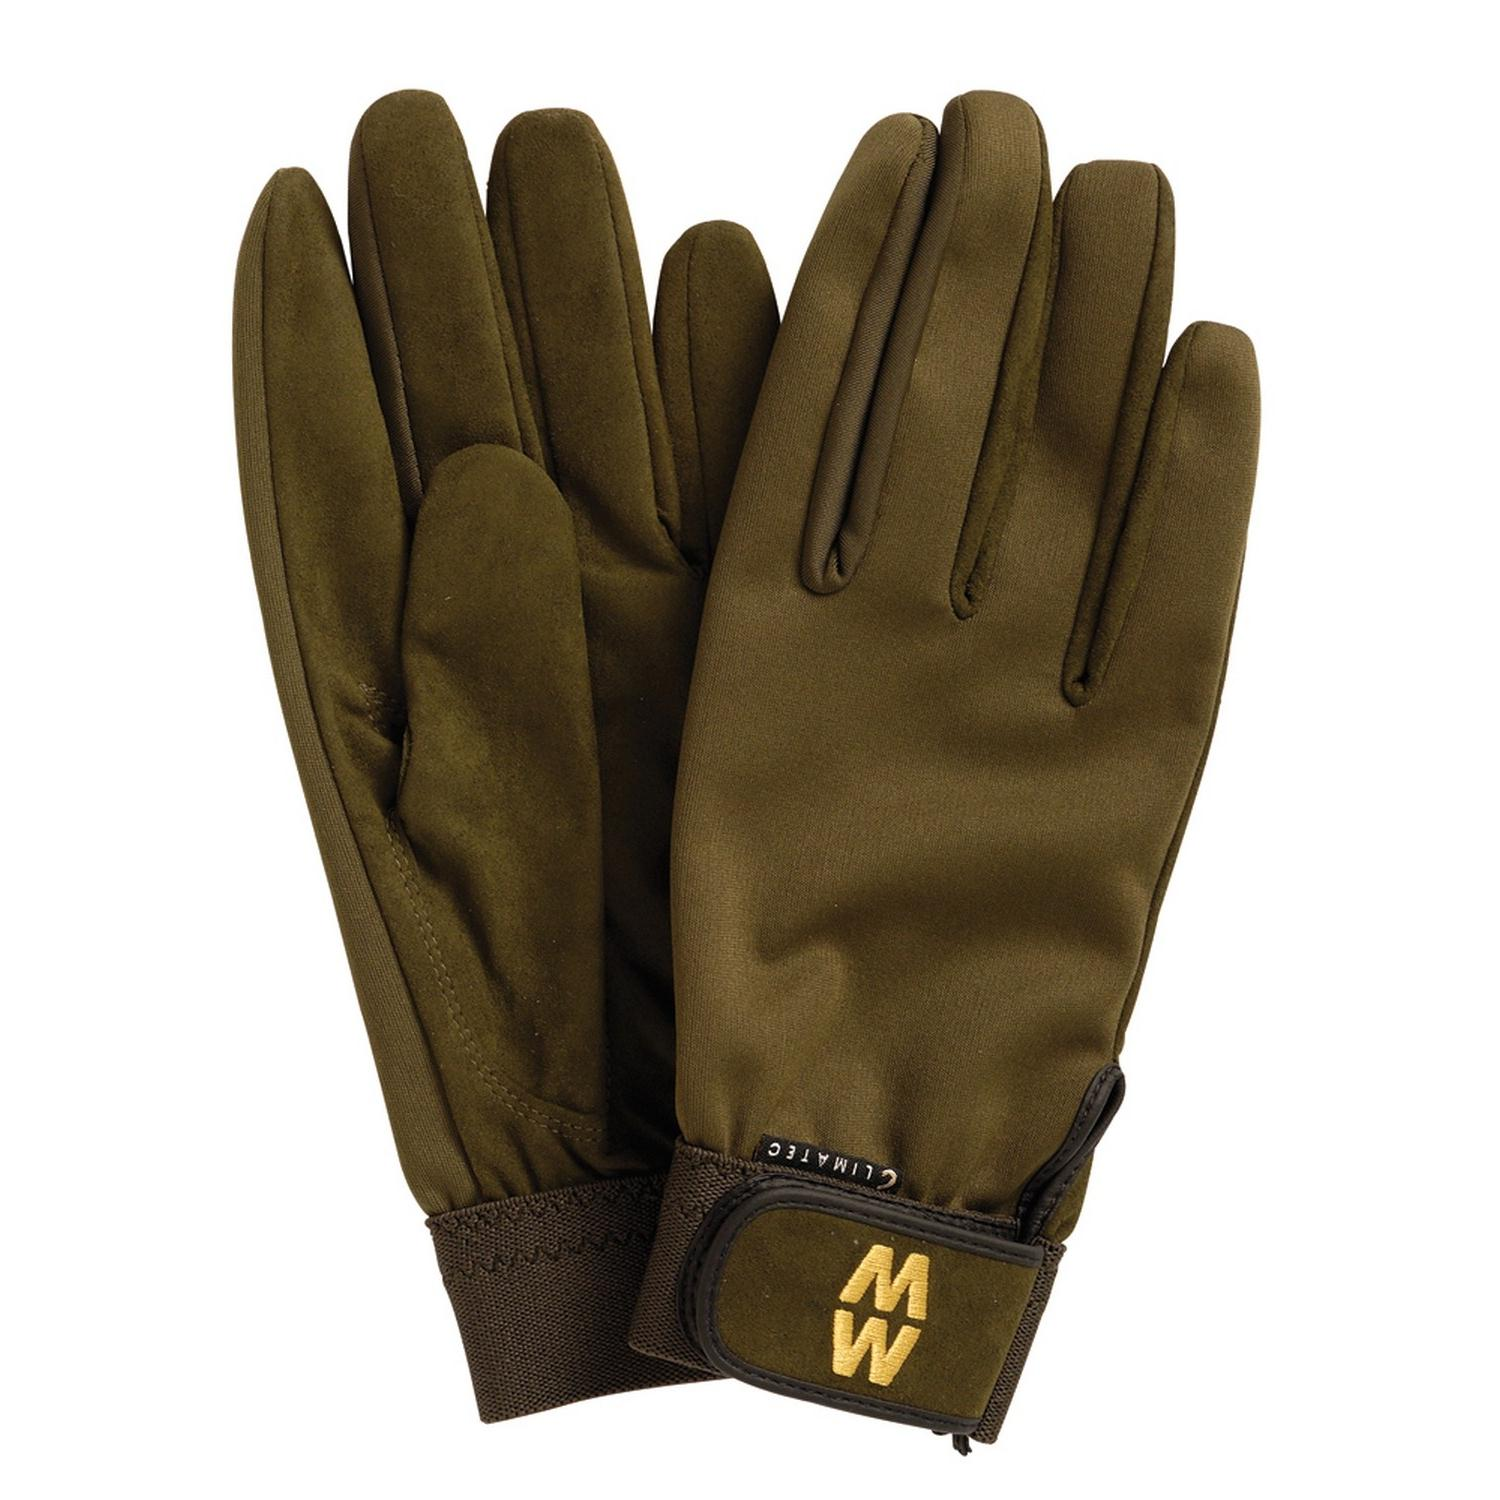 MacWet Shooting Gloves from Fur Feather & Fin